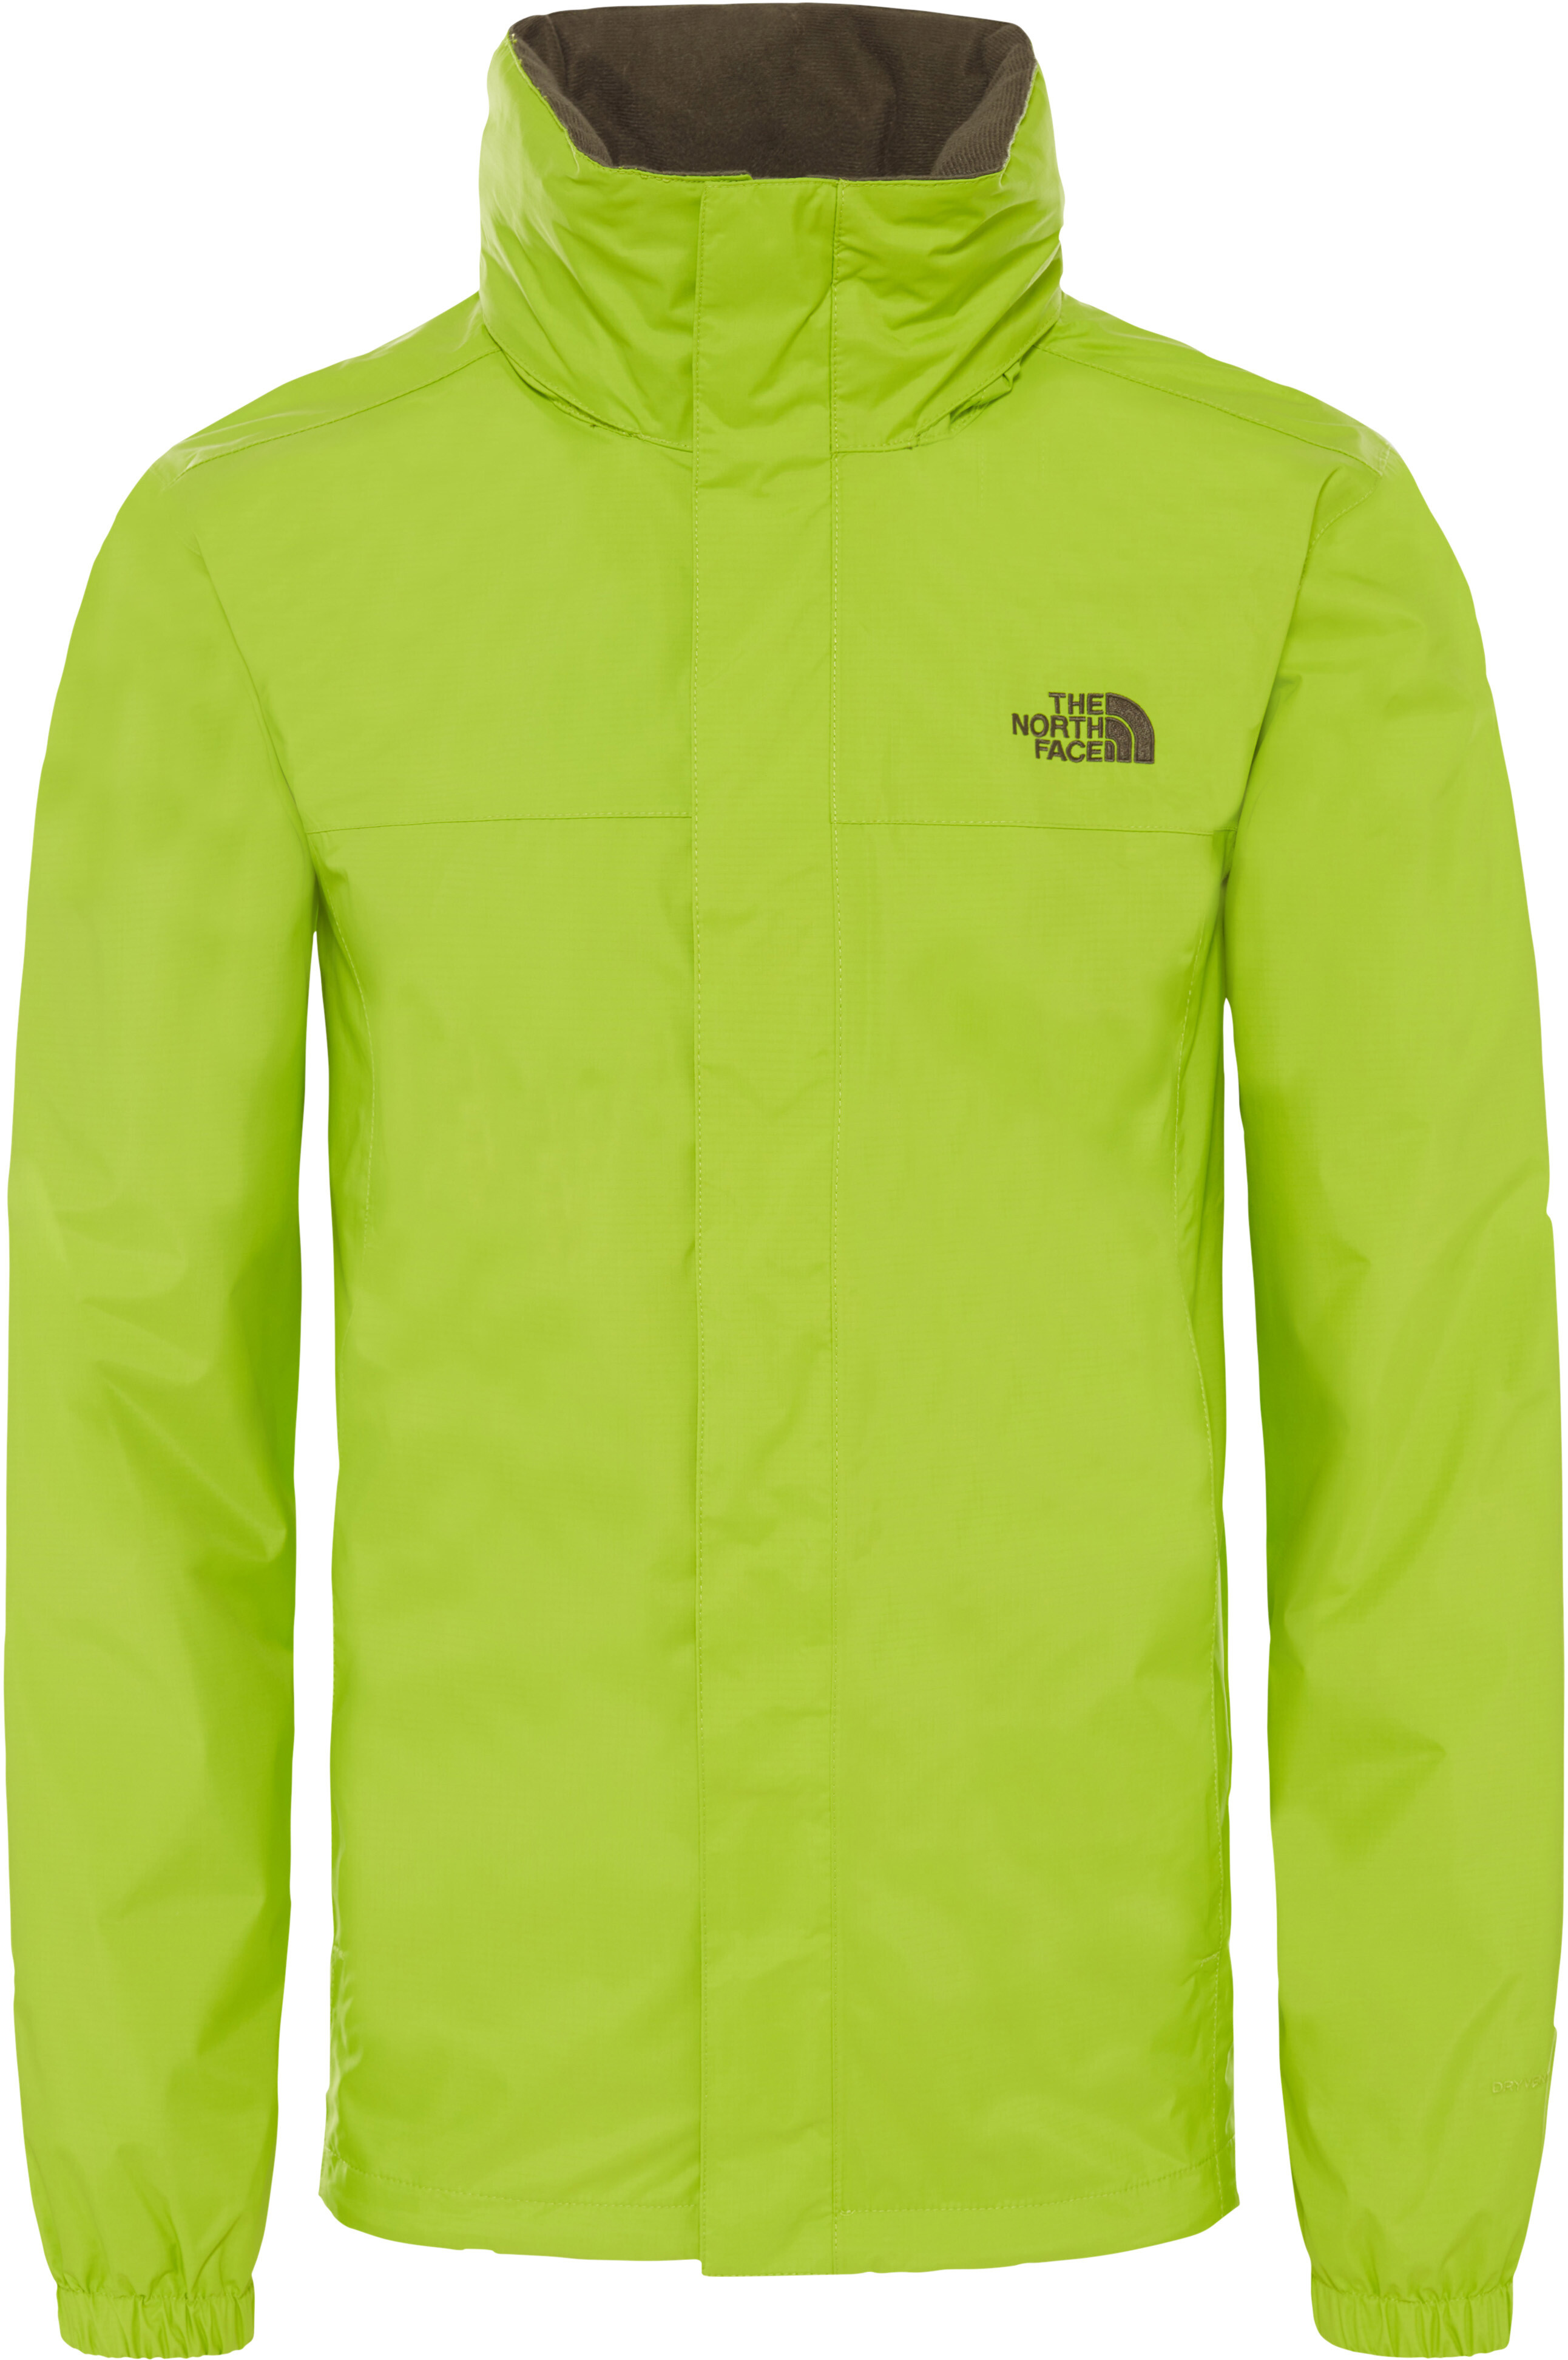 4dc059cb7e The North Face Resolve 2 Jacket Herren lime green/new taupe green ...